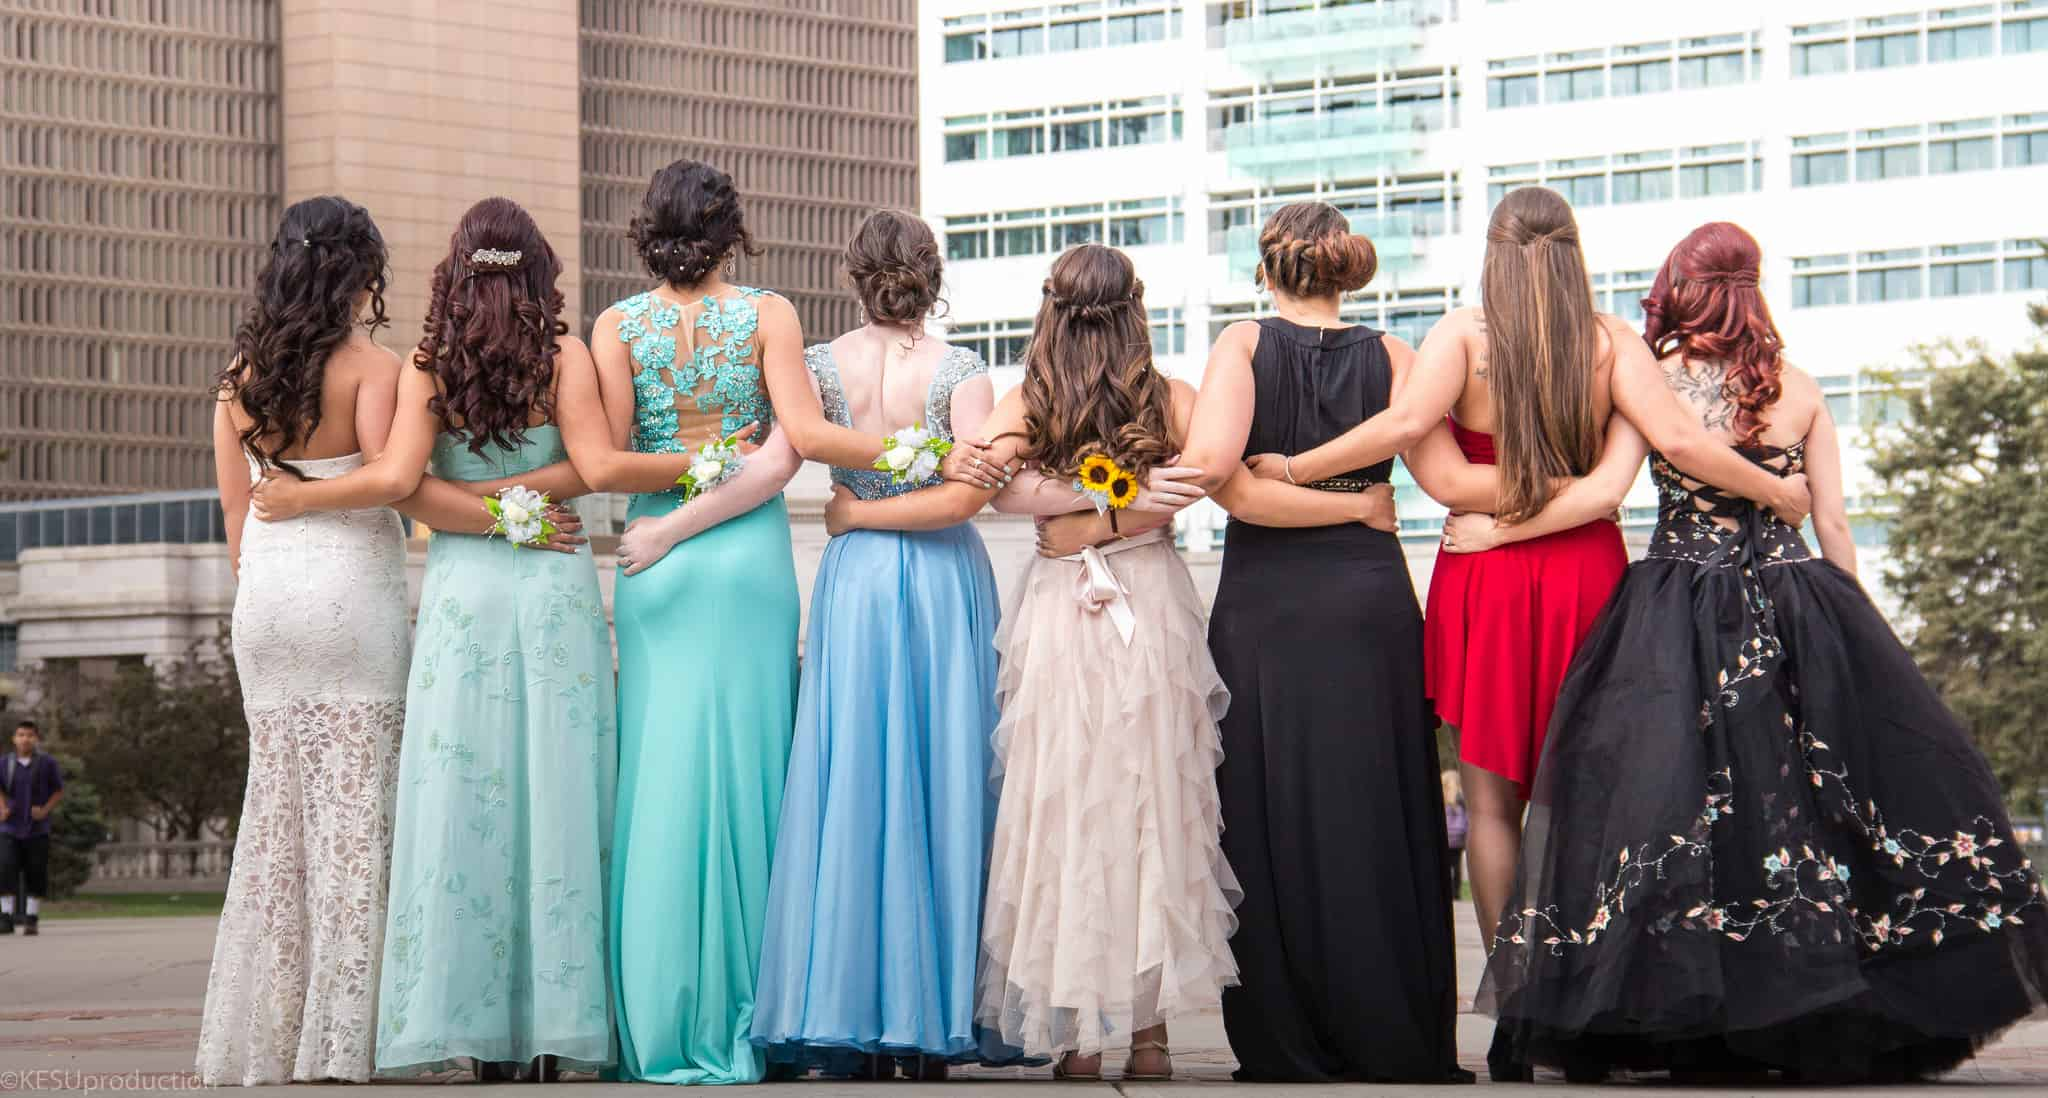 Organizations That Donate Free Prom Dresses To High School